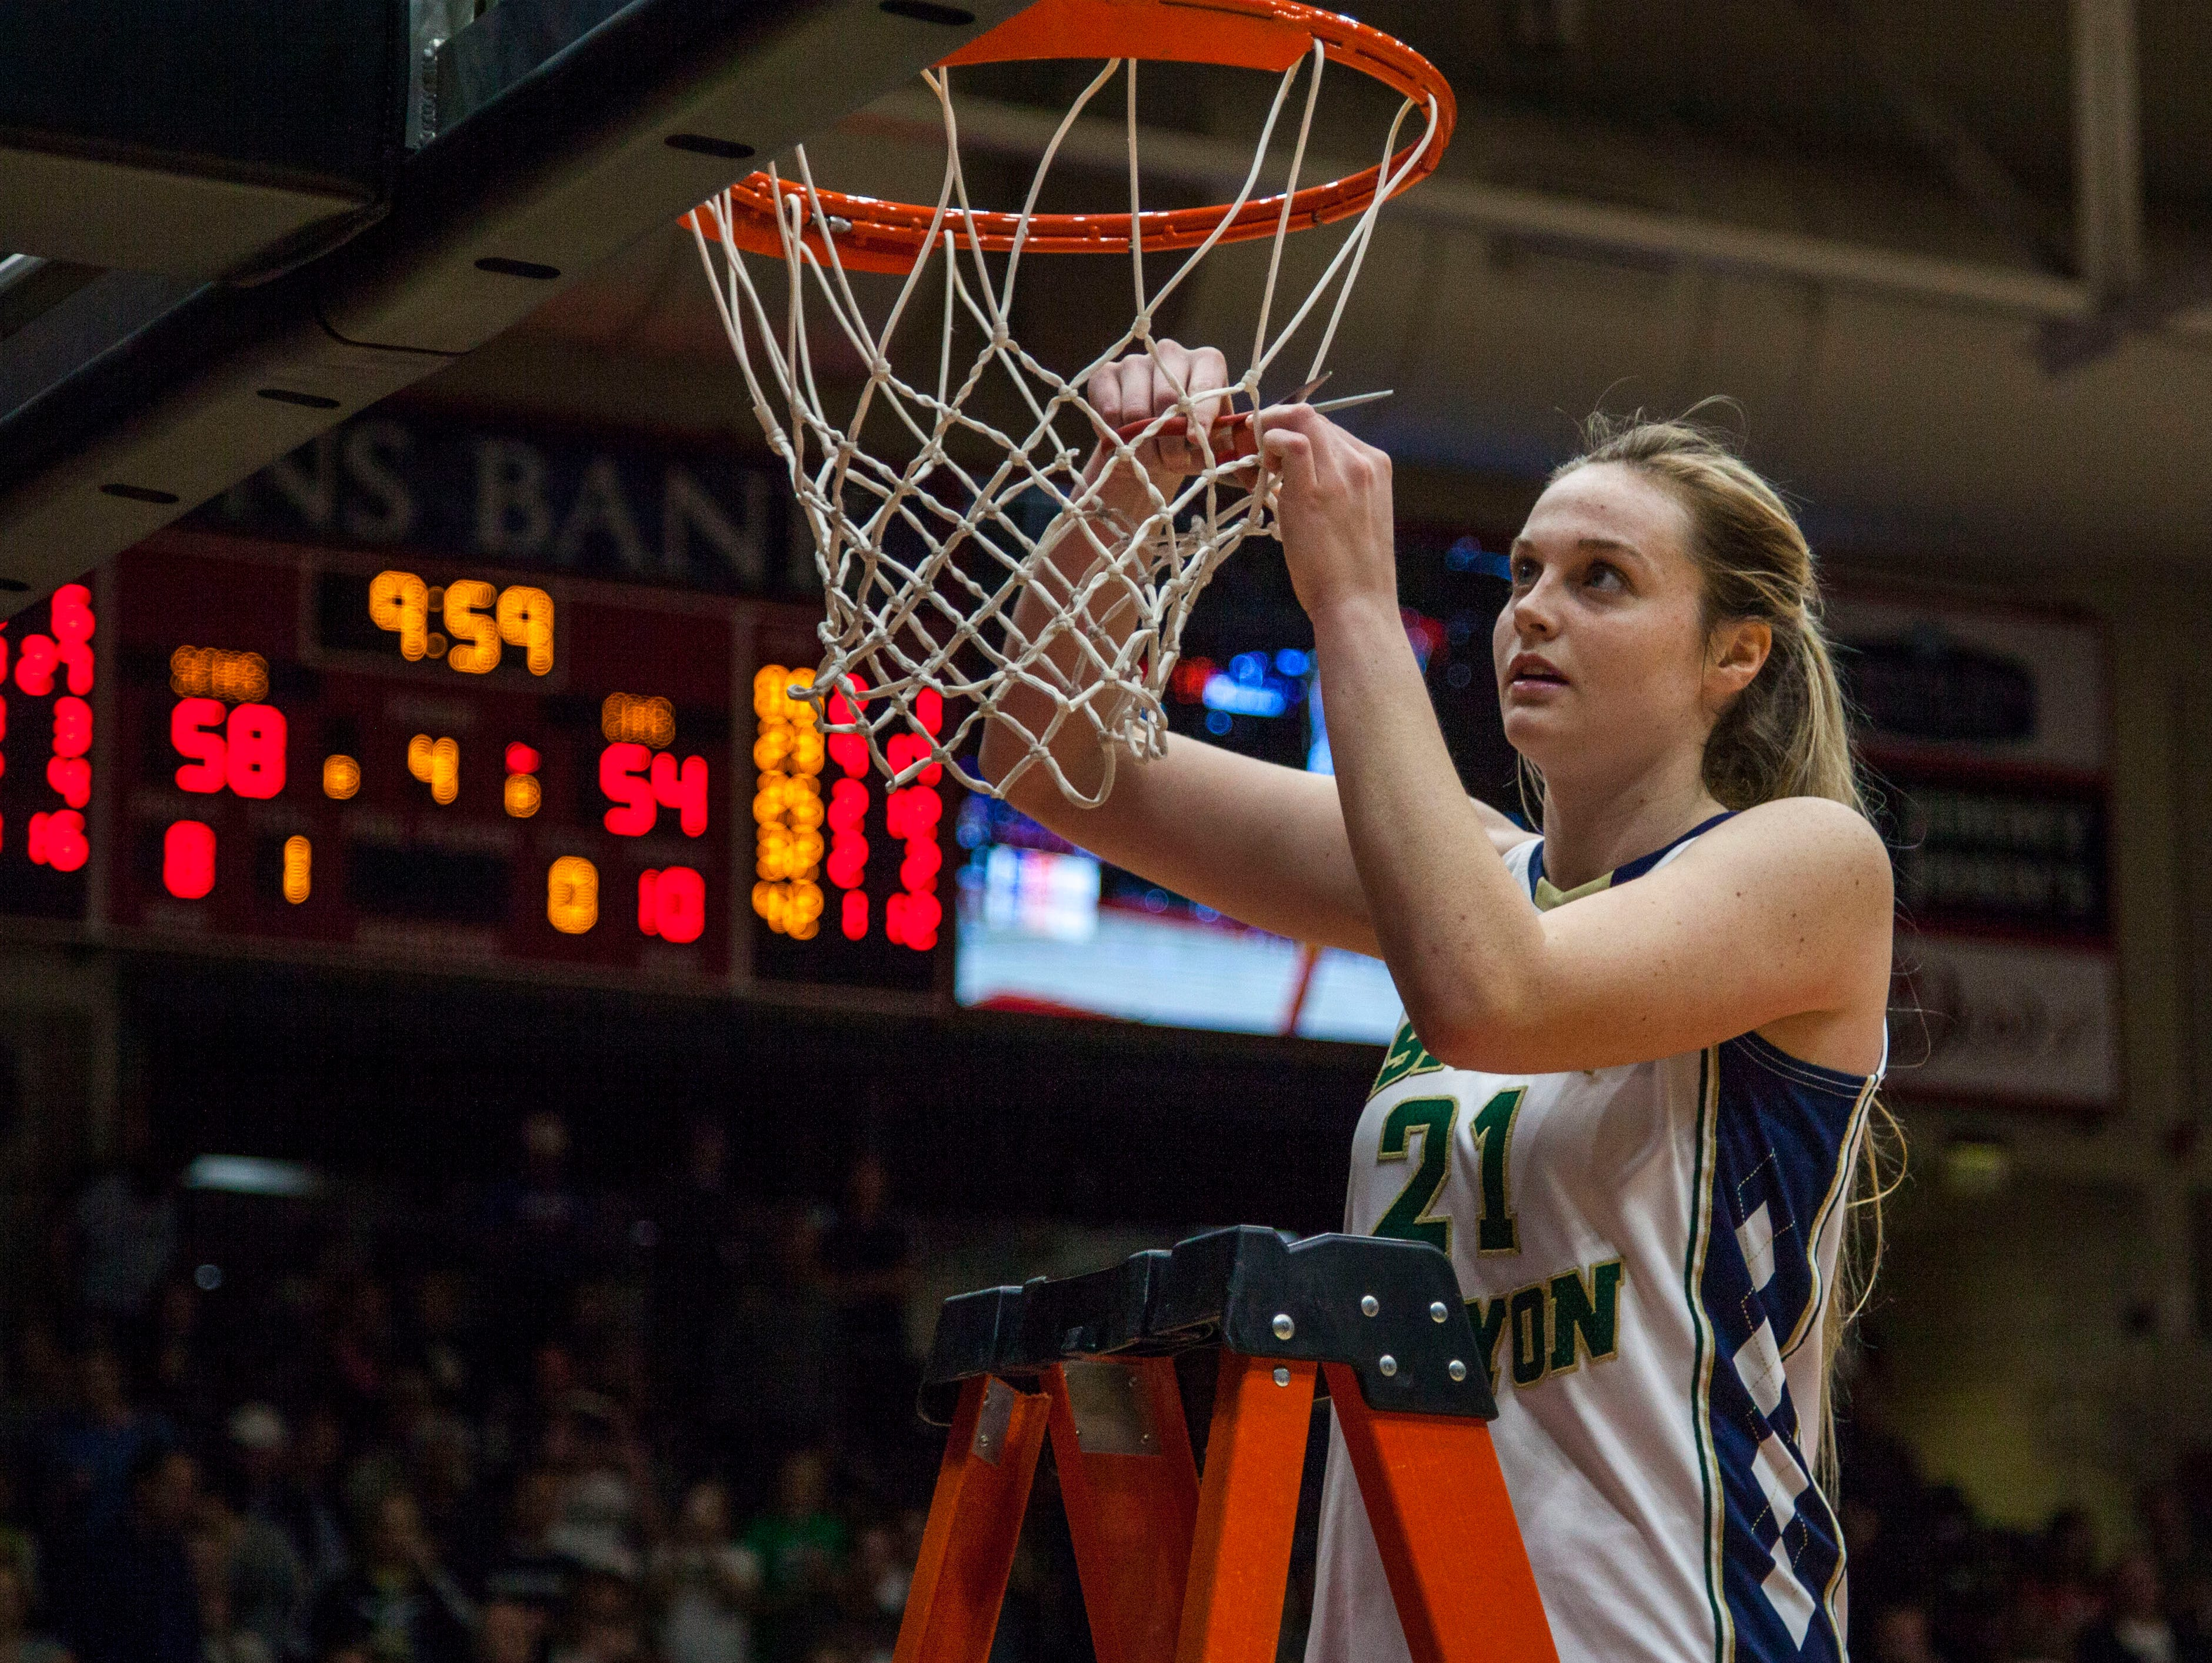 Snow Canyon's Madison Mooring celebrates winning the 3A championship game by cutting a piece of the net in the SUU Centrum, Feb. 27, 2016.